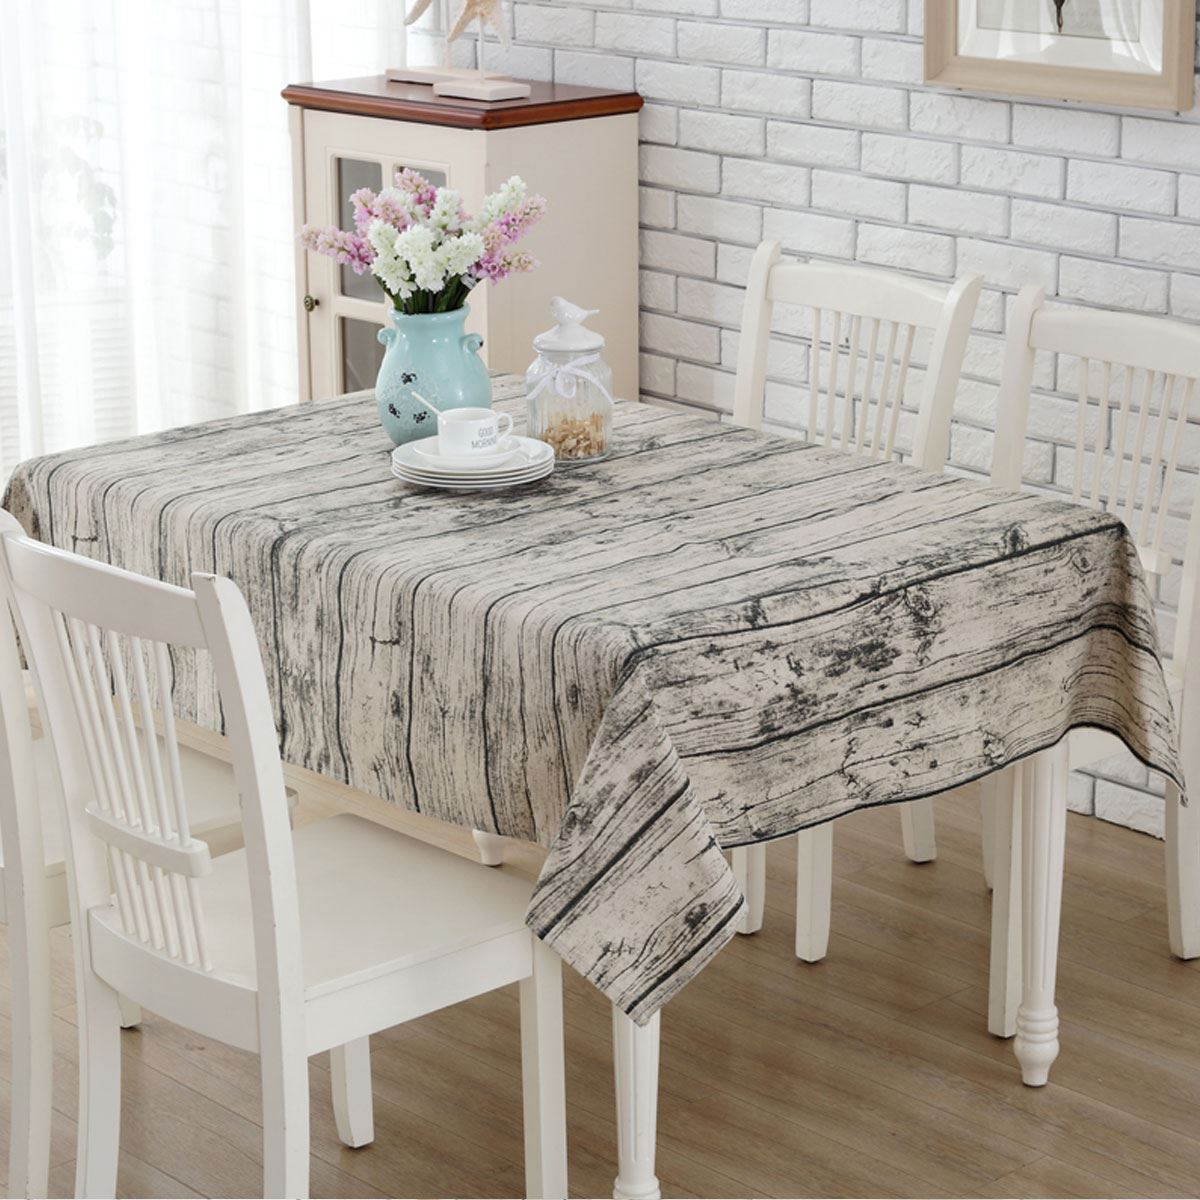 140 x 180cm Burlap Table Runners Wood Grain Tablecloth Cheap Tablecloths for Sale Linen Simple Knitted Striped Classic(China (Mainland))